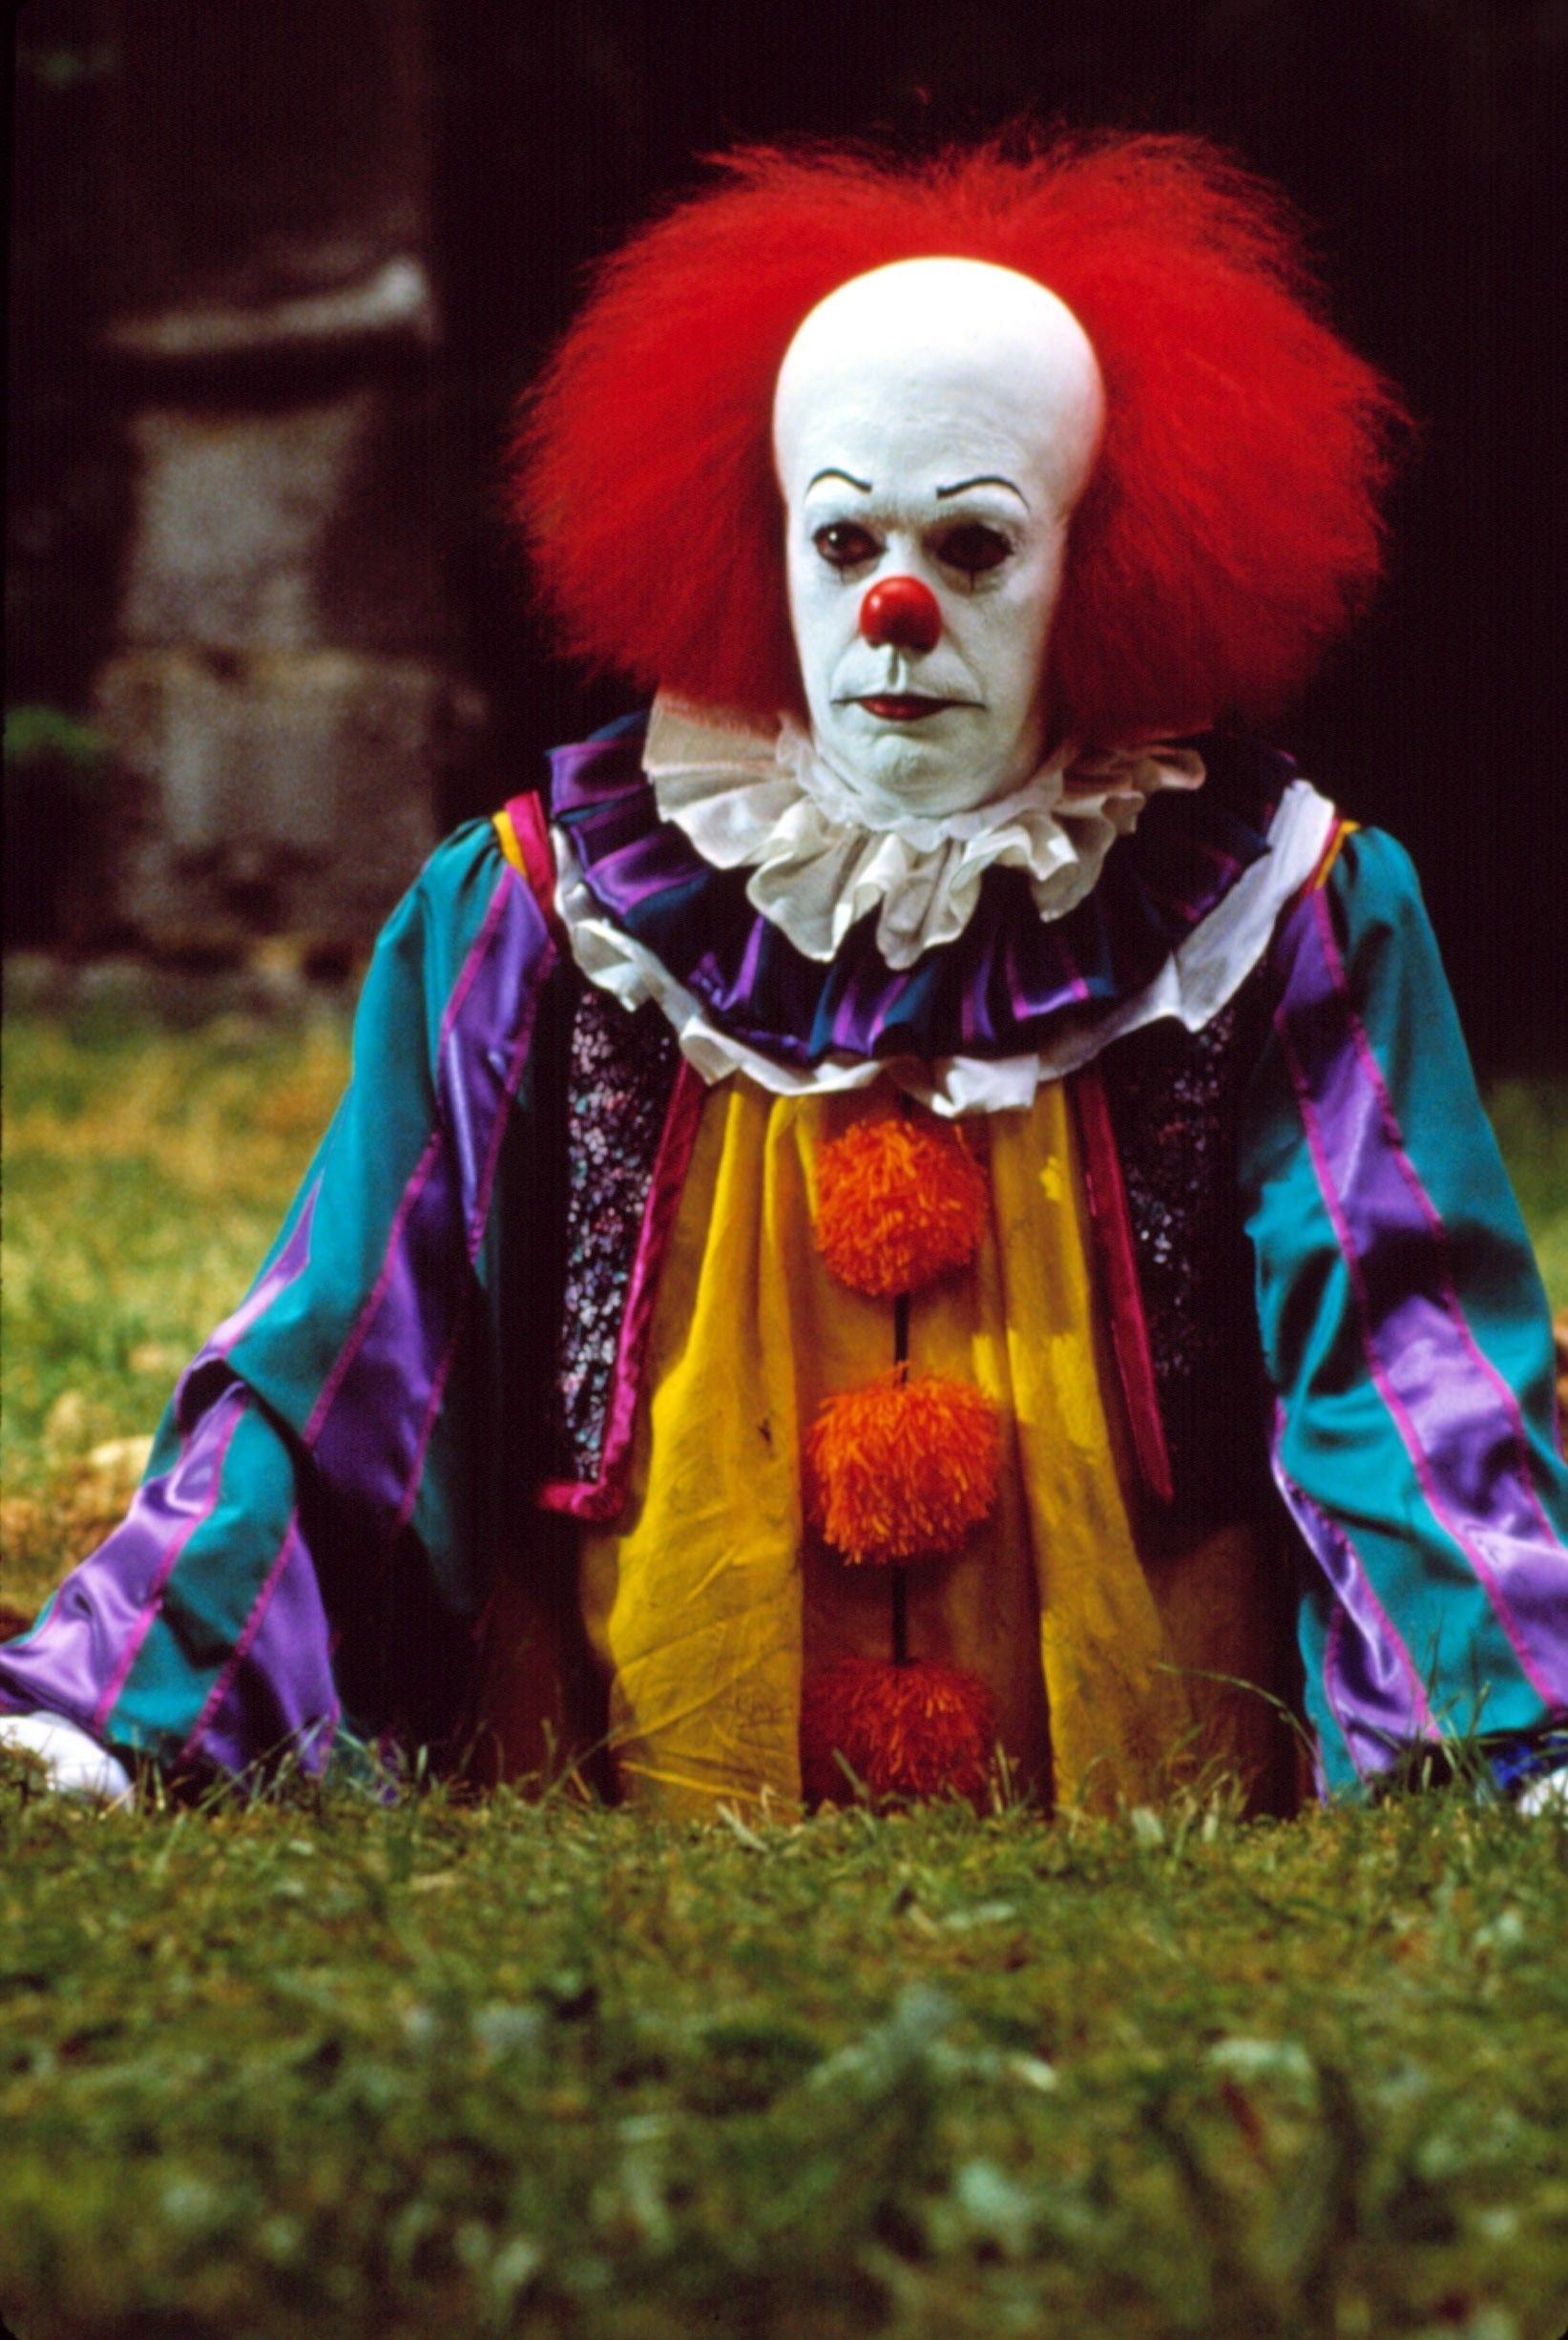 Pennywise the clown from IT! | Halloween Costumes DIY | Pinterest ...